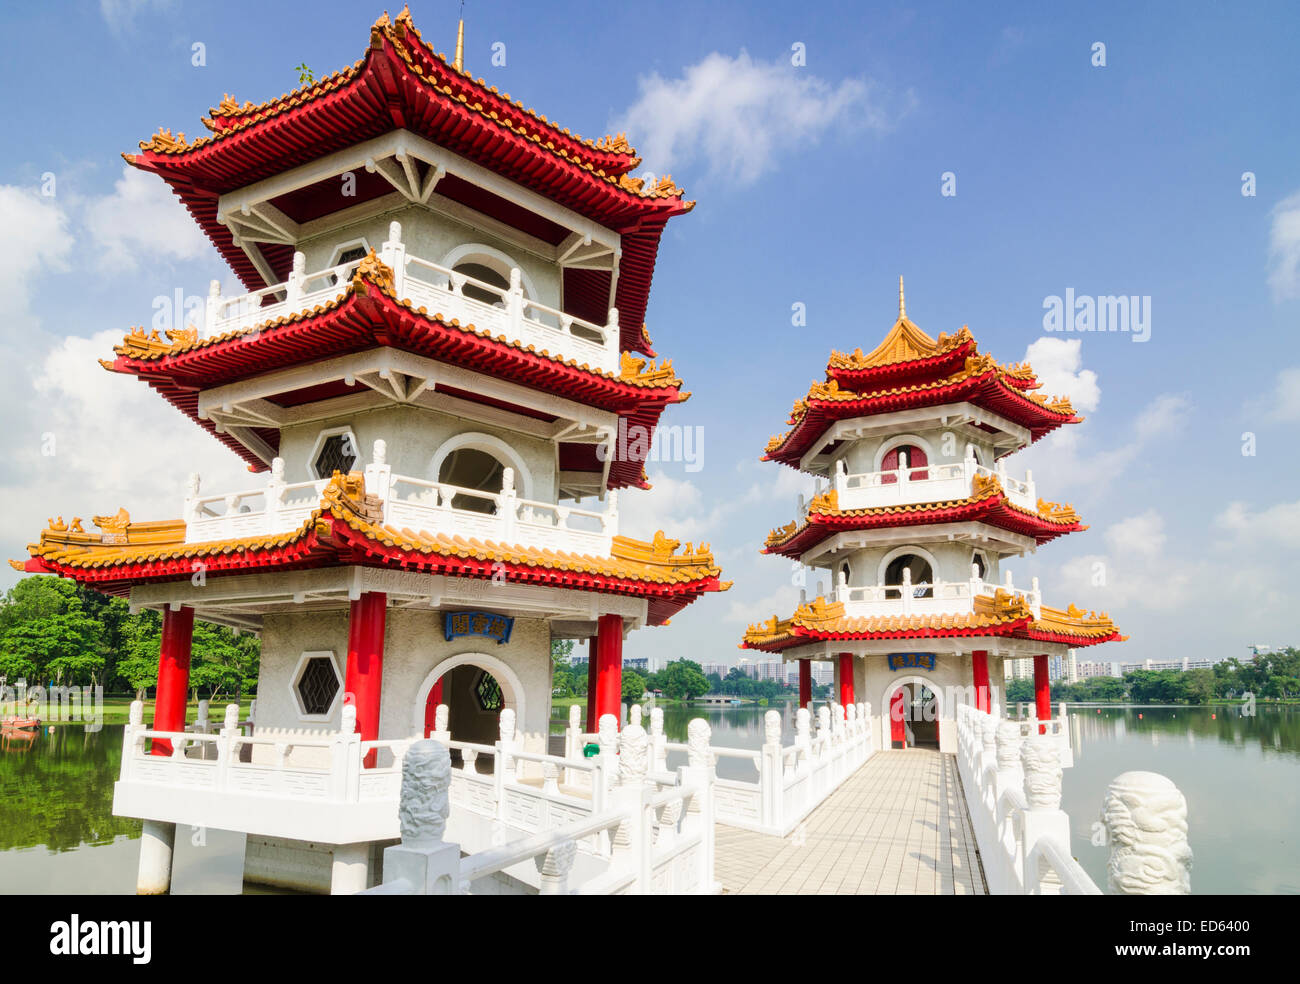 Twin Pagodas at the Chinese Garden, Singapore - Stock Image